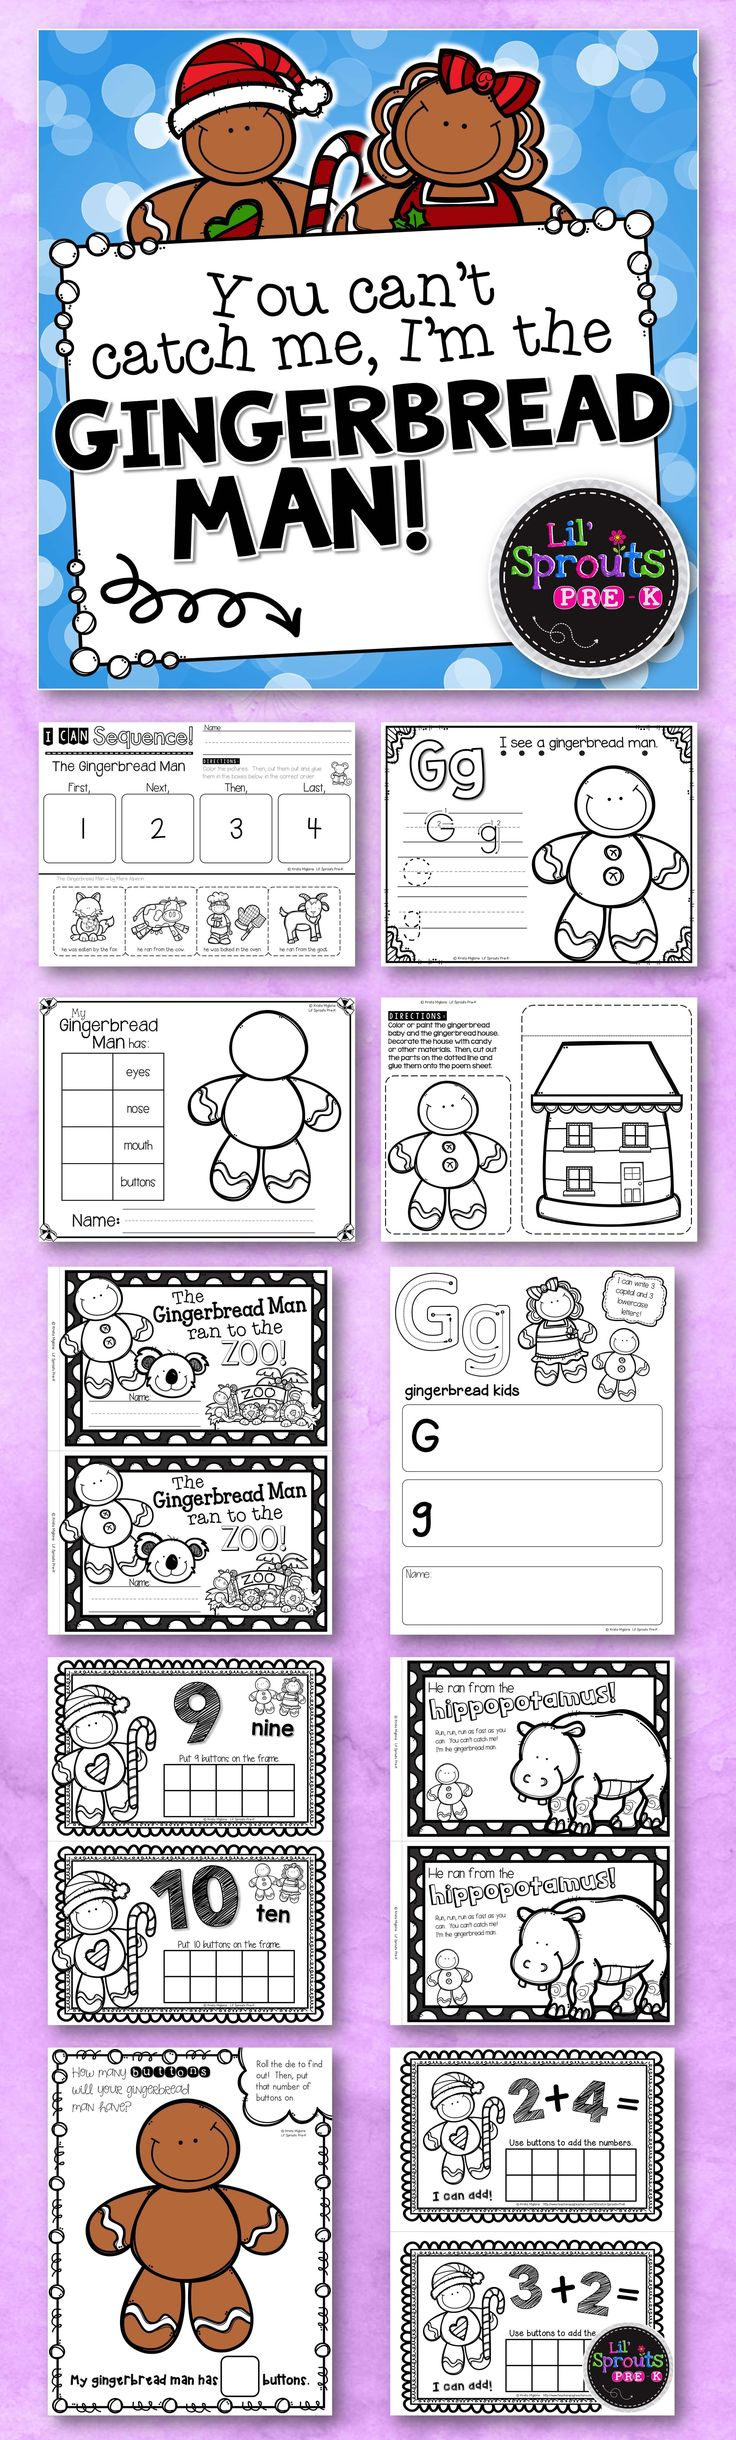 This is a complete unit on The Gingerbread Man! There are so many printables, worksheets, activities and centers to choose from! This unit is designed for Preschool, Pre-K, and Kindergarten. Great for the holidays! Over 120 pages of resources! Lil' Sprouts Pre-K